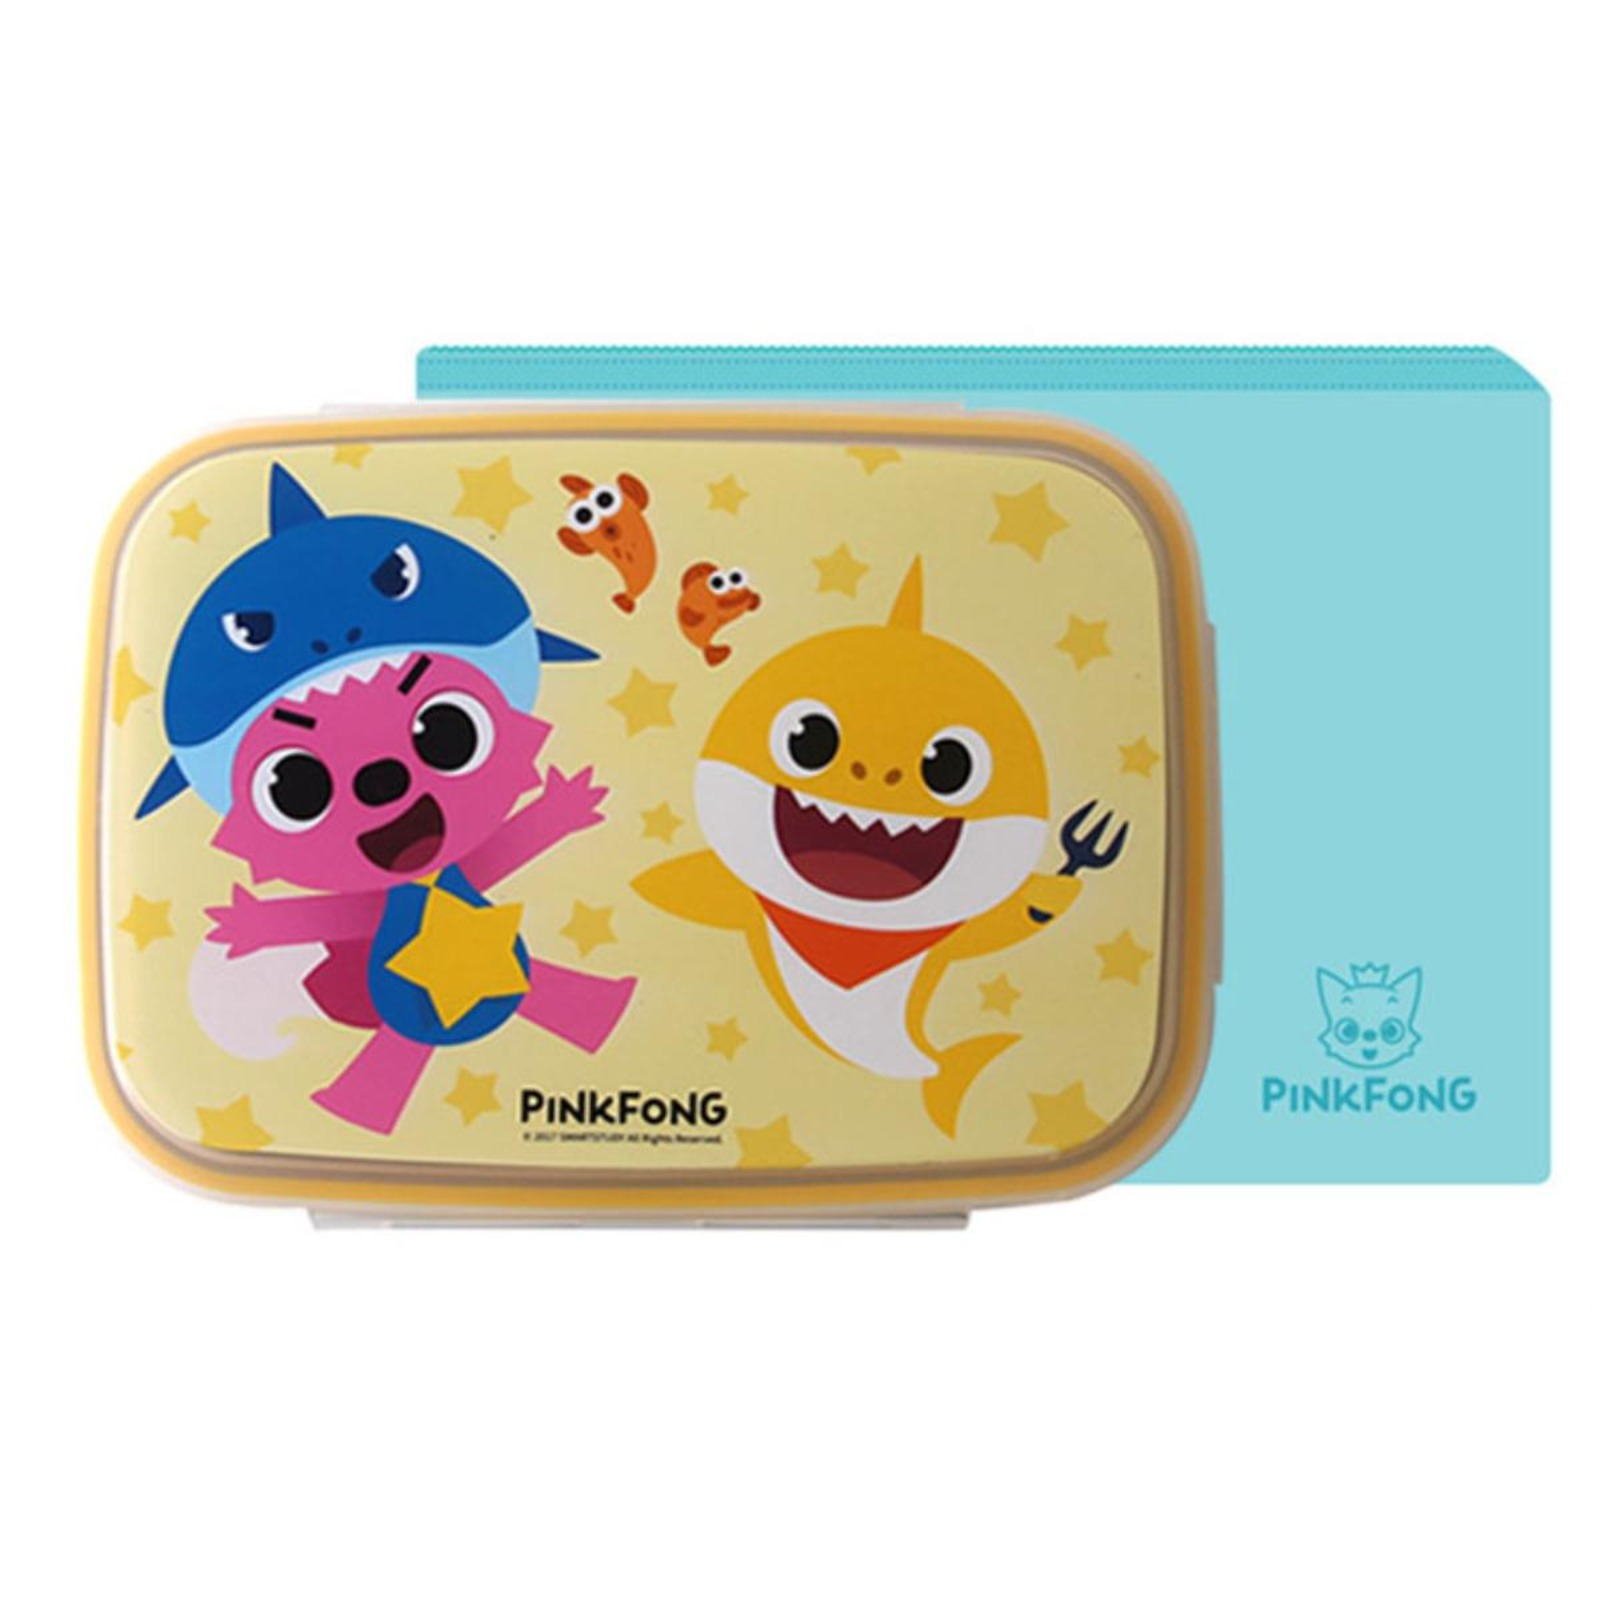 Pinkfong Wide Stainless Steel Lunch Box